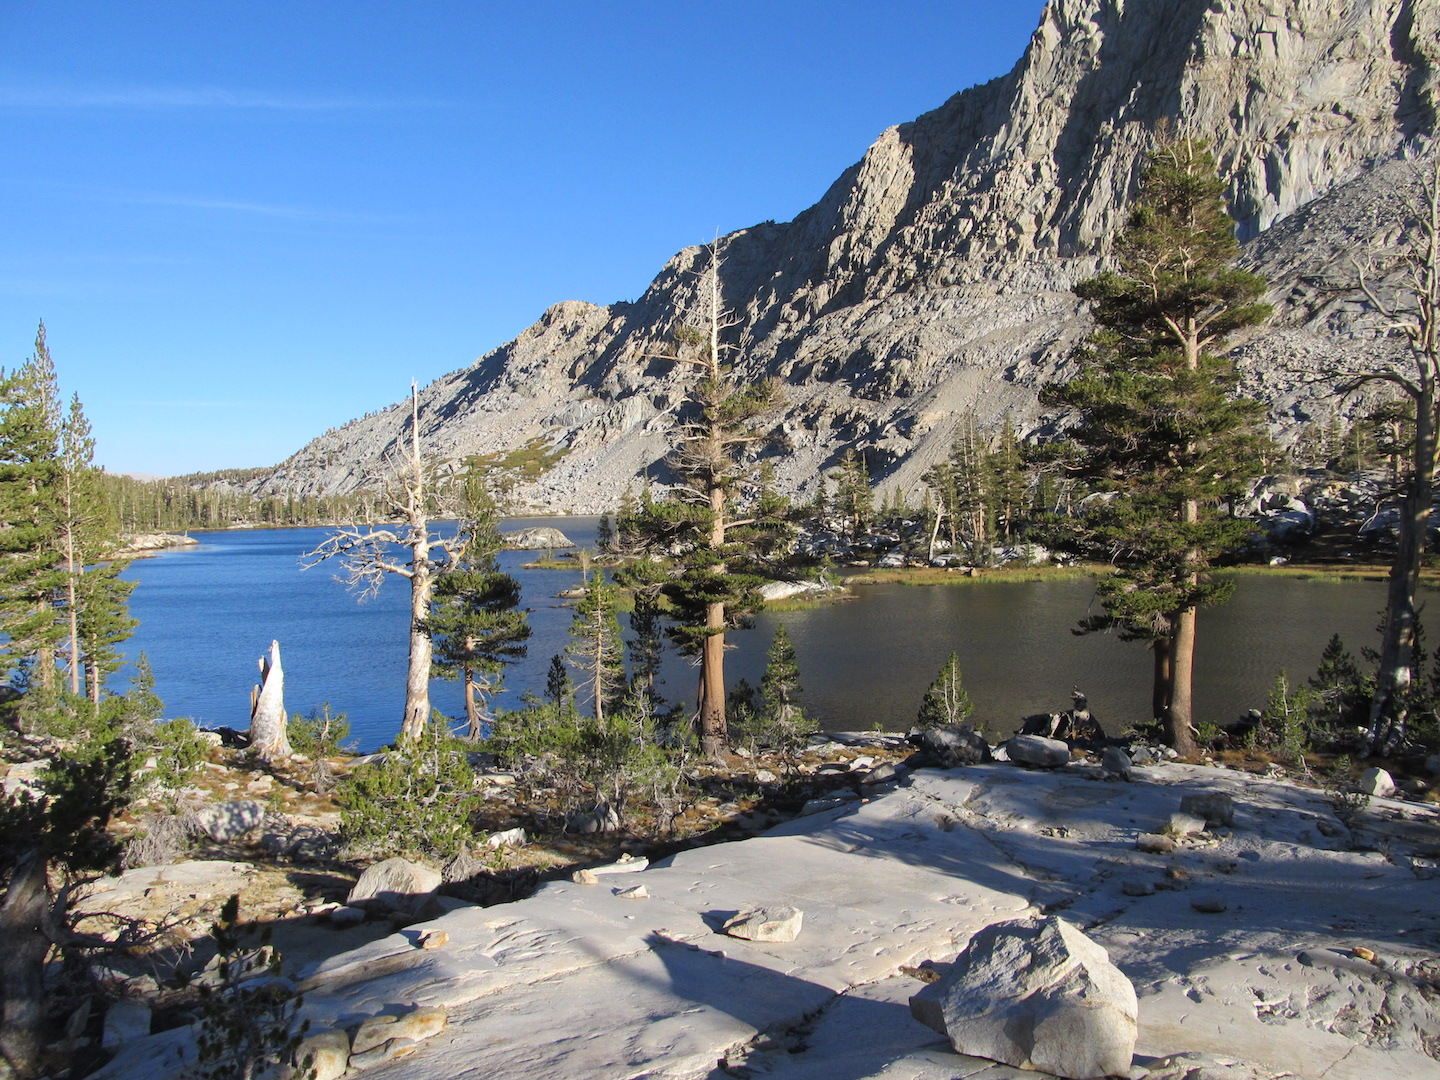 Lakeside camping in the High Sierra